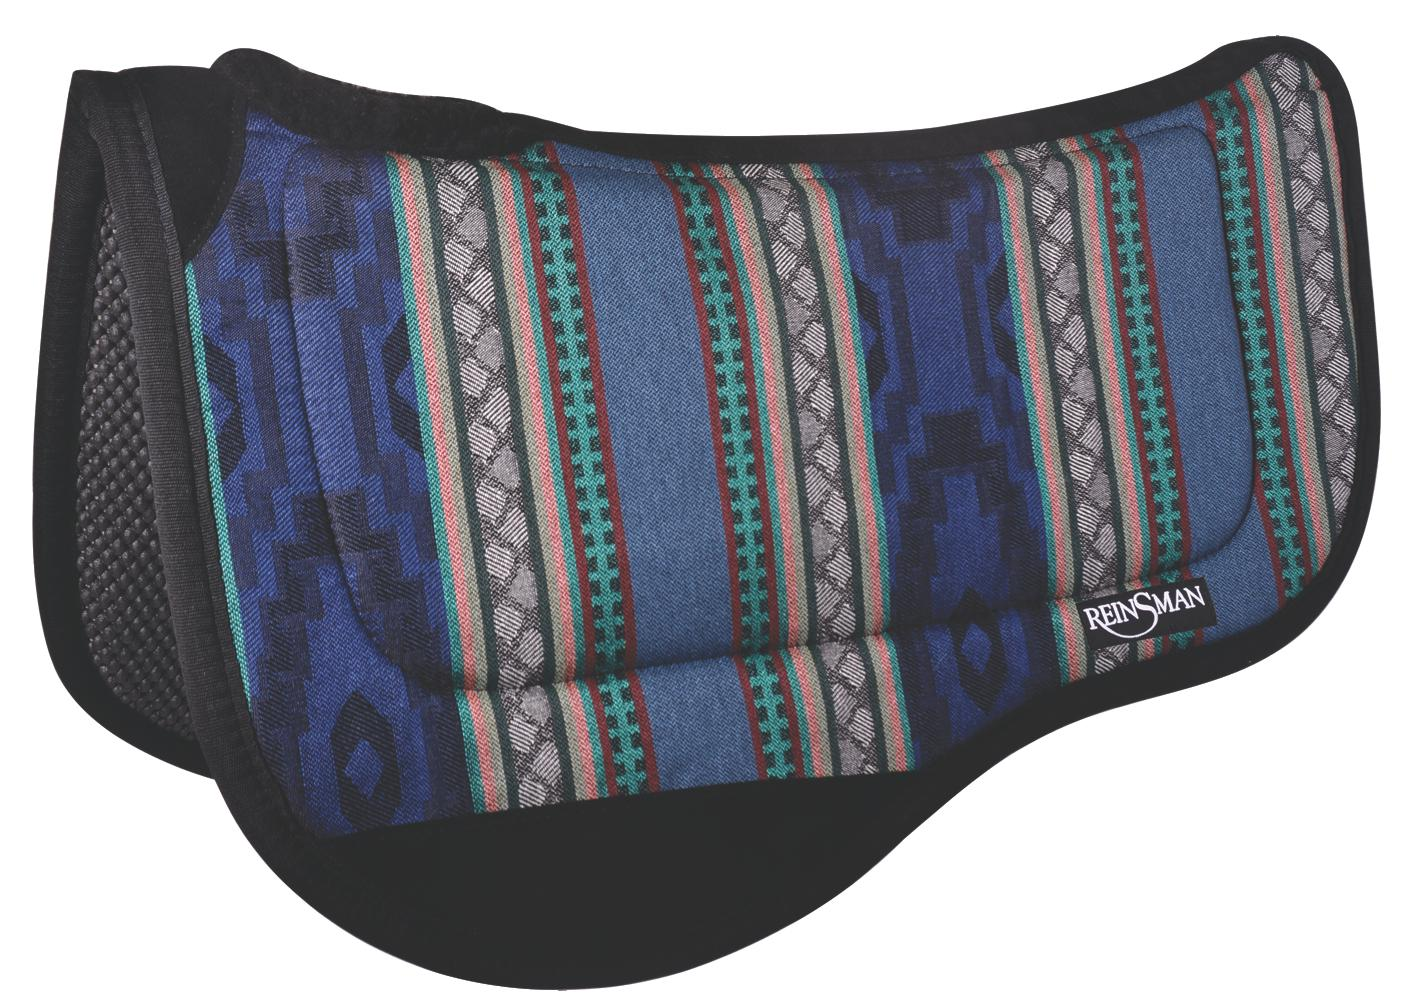 REINSMAN Comfort Flex Fleece Trail Herculon Pad - Tacky Too - Running Bull Onyx Print